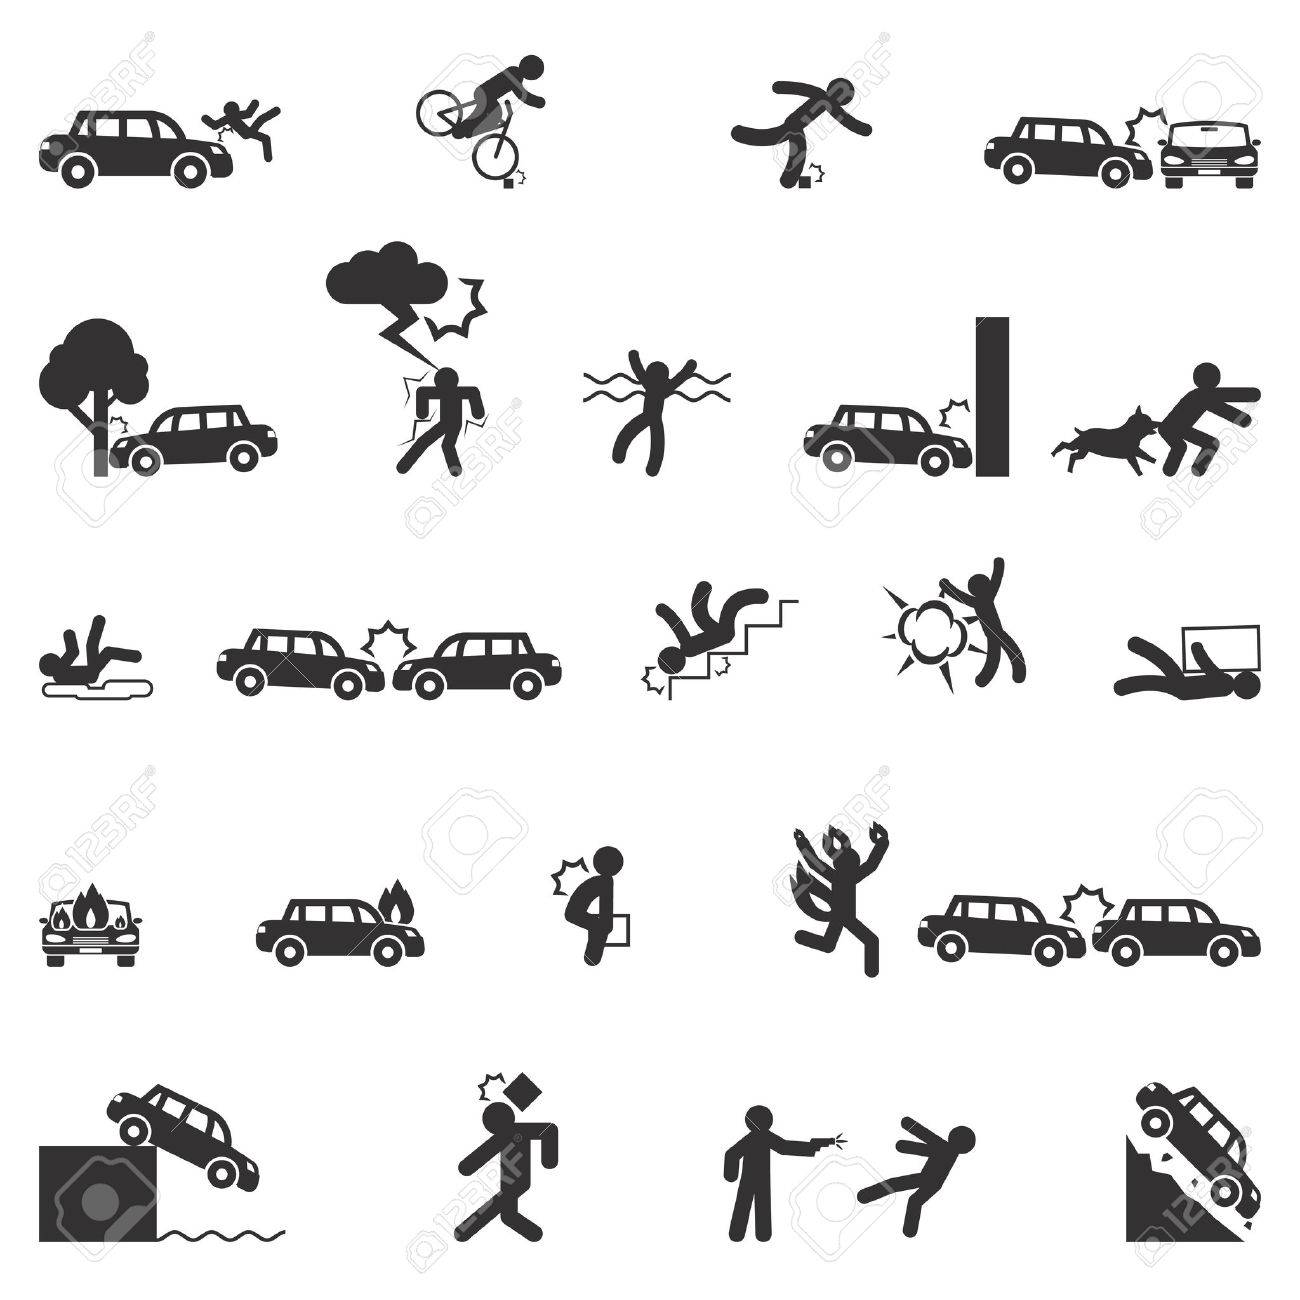 Accident icons vector set. Accident fire, accident transportation, disaster accident danger illustration - 54596917